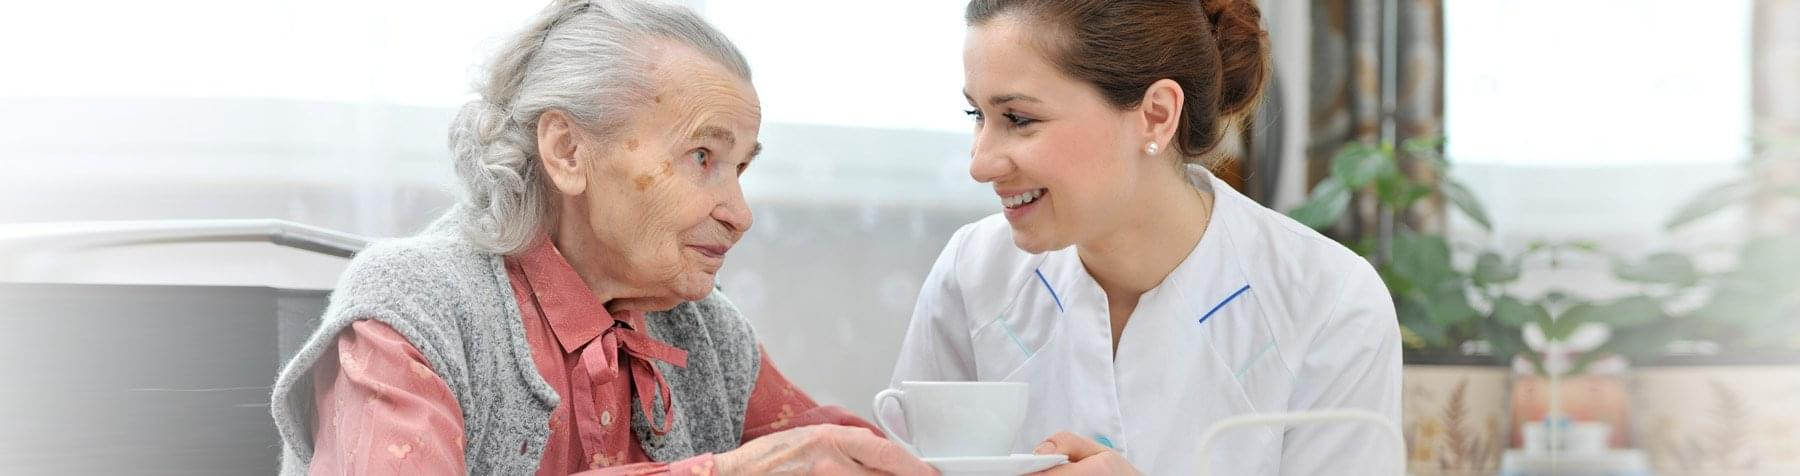 Home Care Service Home Care Services 24 Hour In Home Care Services